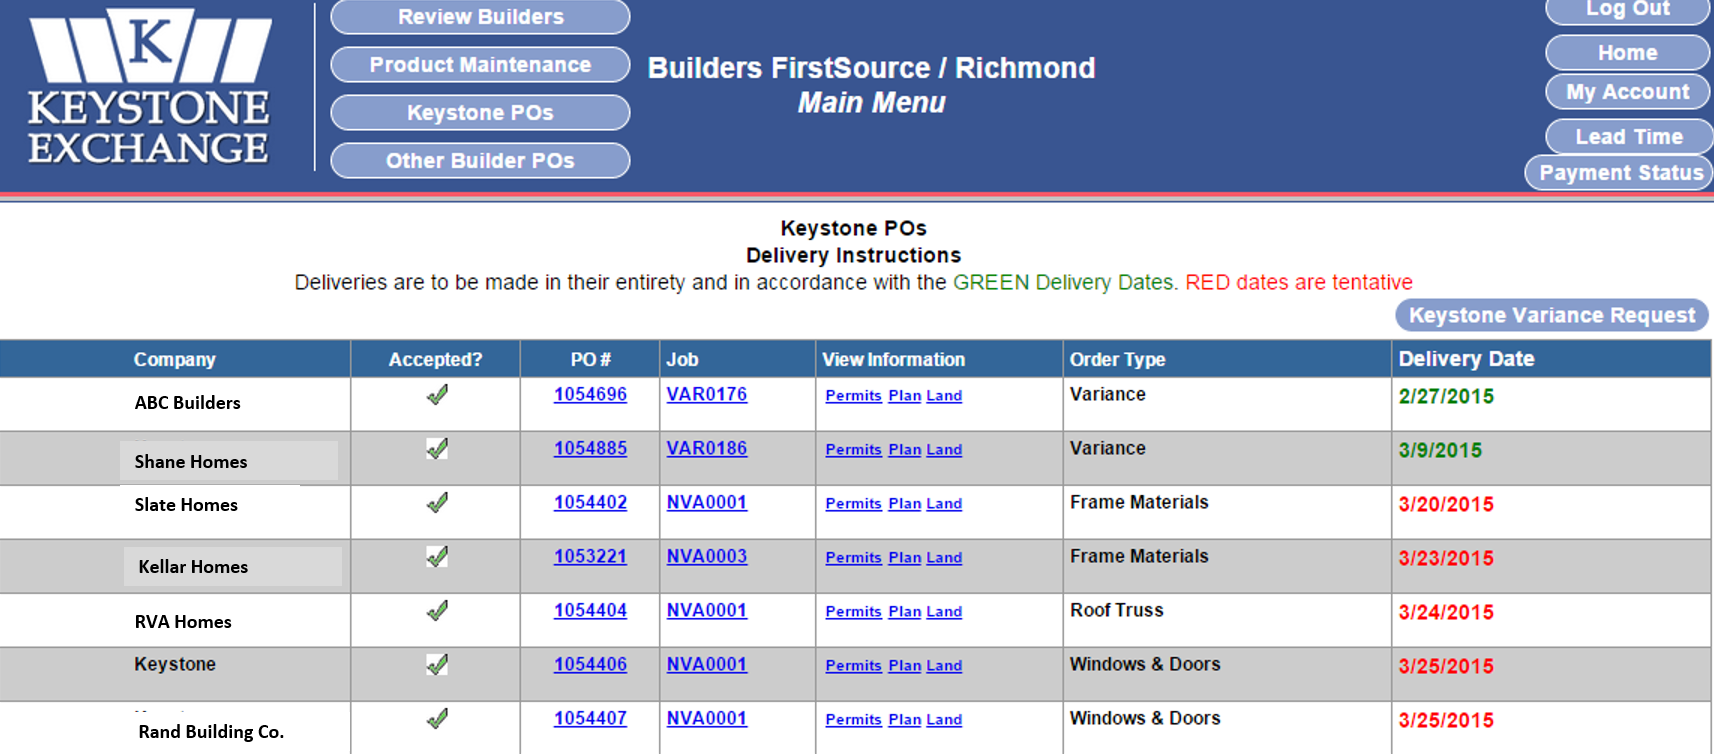 vendors portals are automatically updated with delivery dates linked to the builder's portal